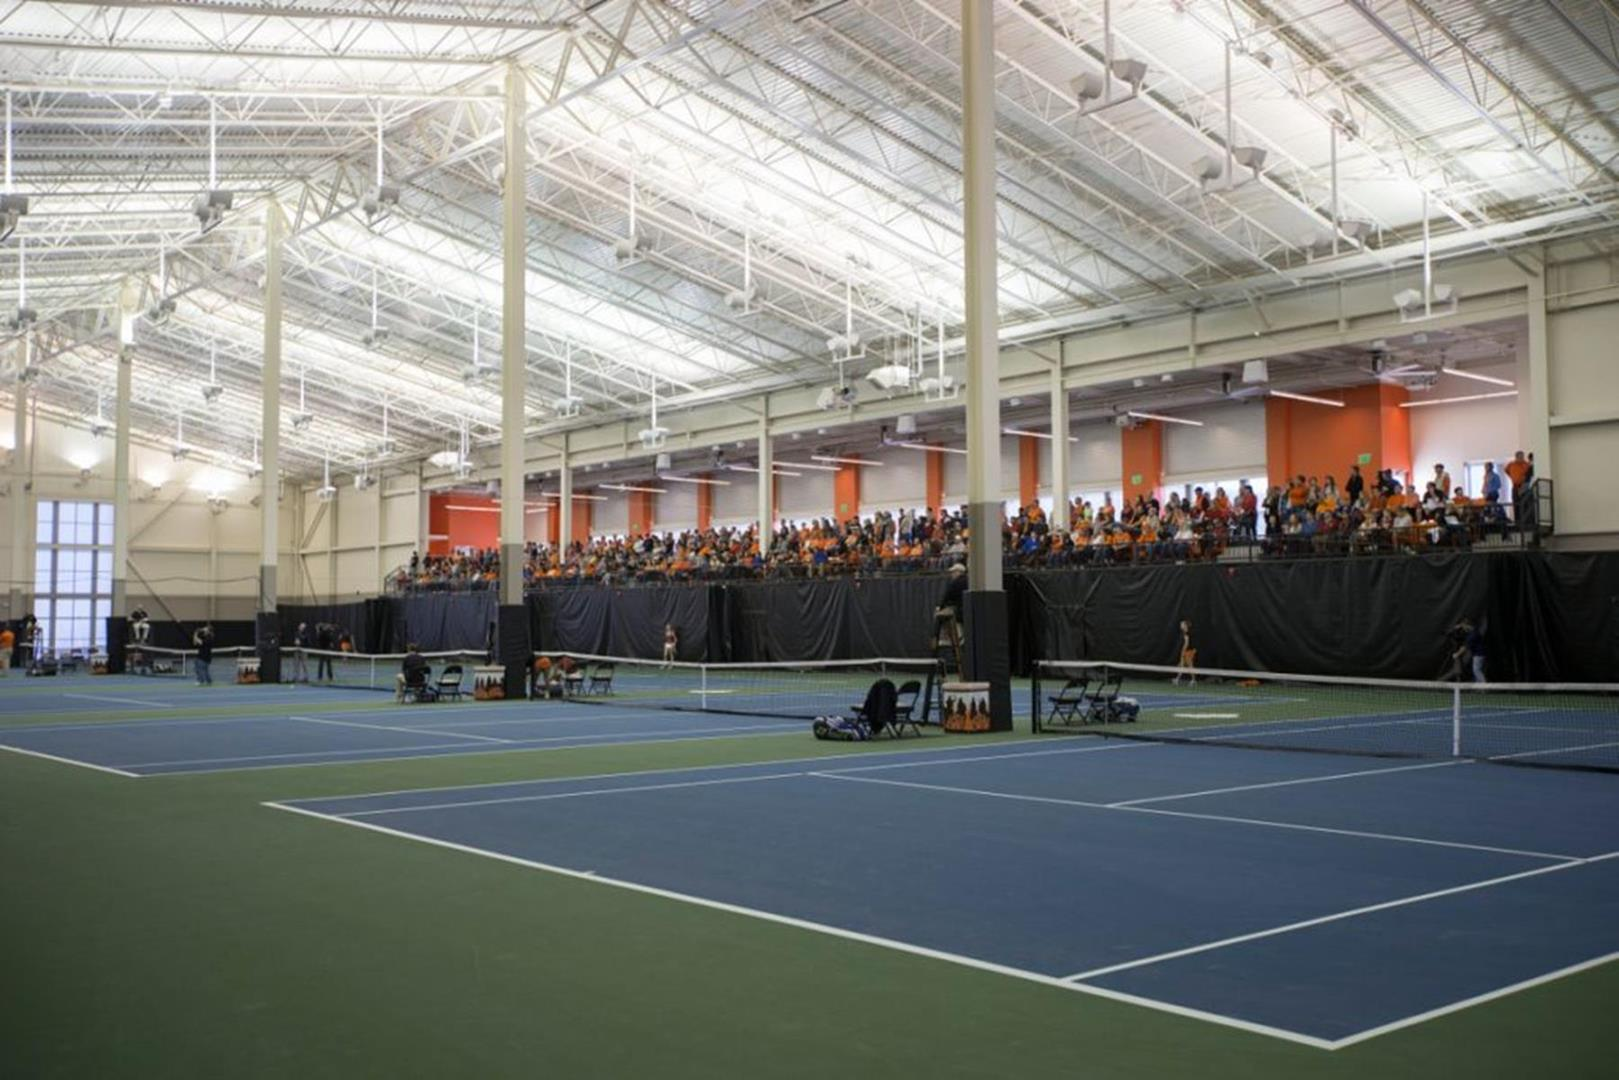 Image Taken at the Oklahoma State Cowgirls vs Oklahoma Sooners Women's Tennis Match, Sunday, March 9, 2014, Greenwood Tennis Center, Stillwater, OK